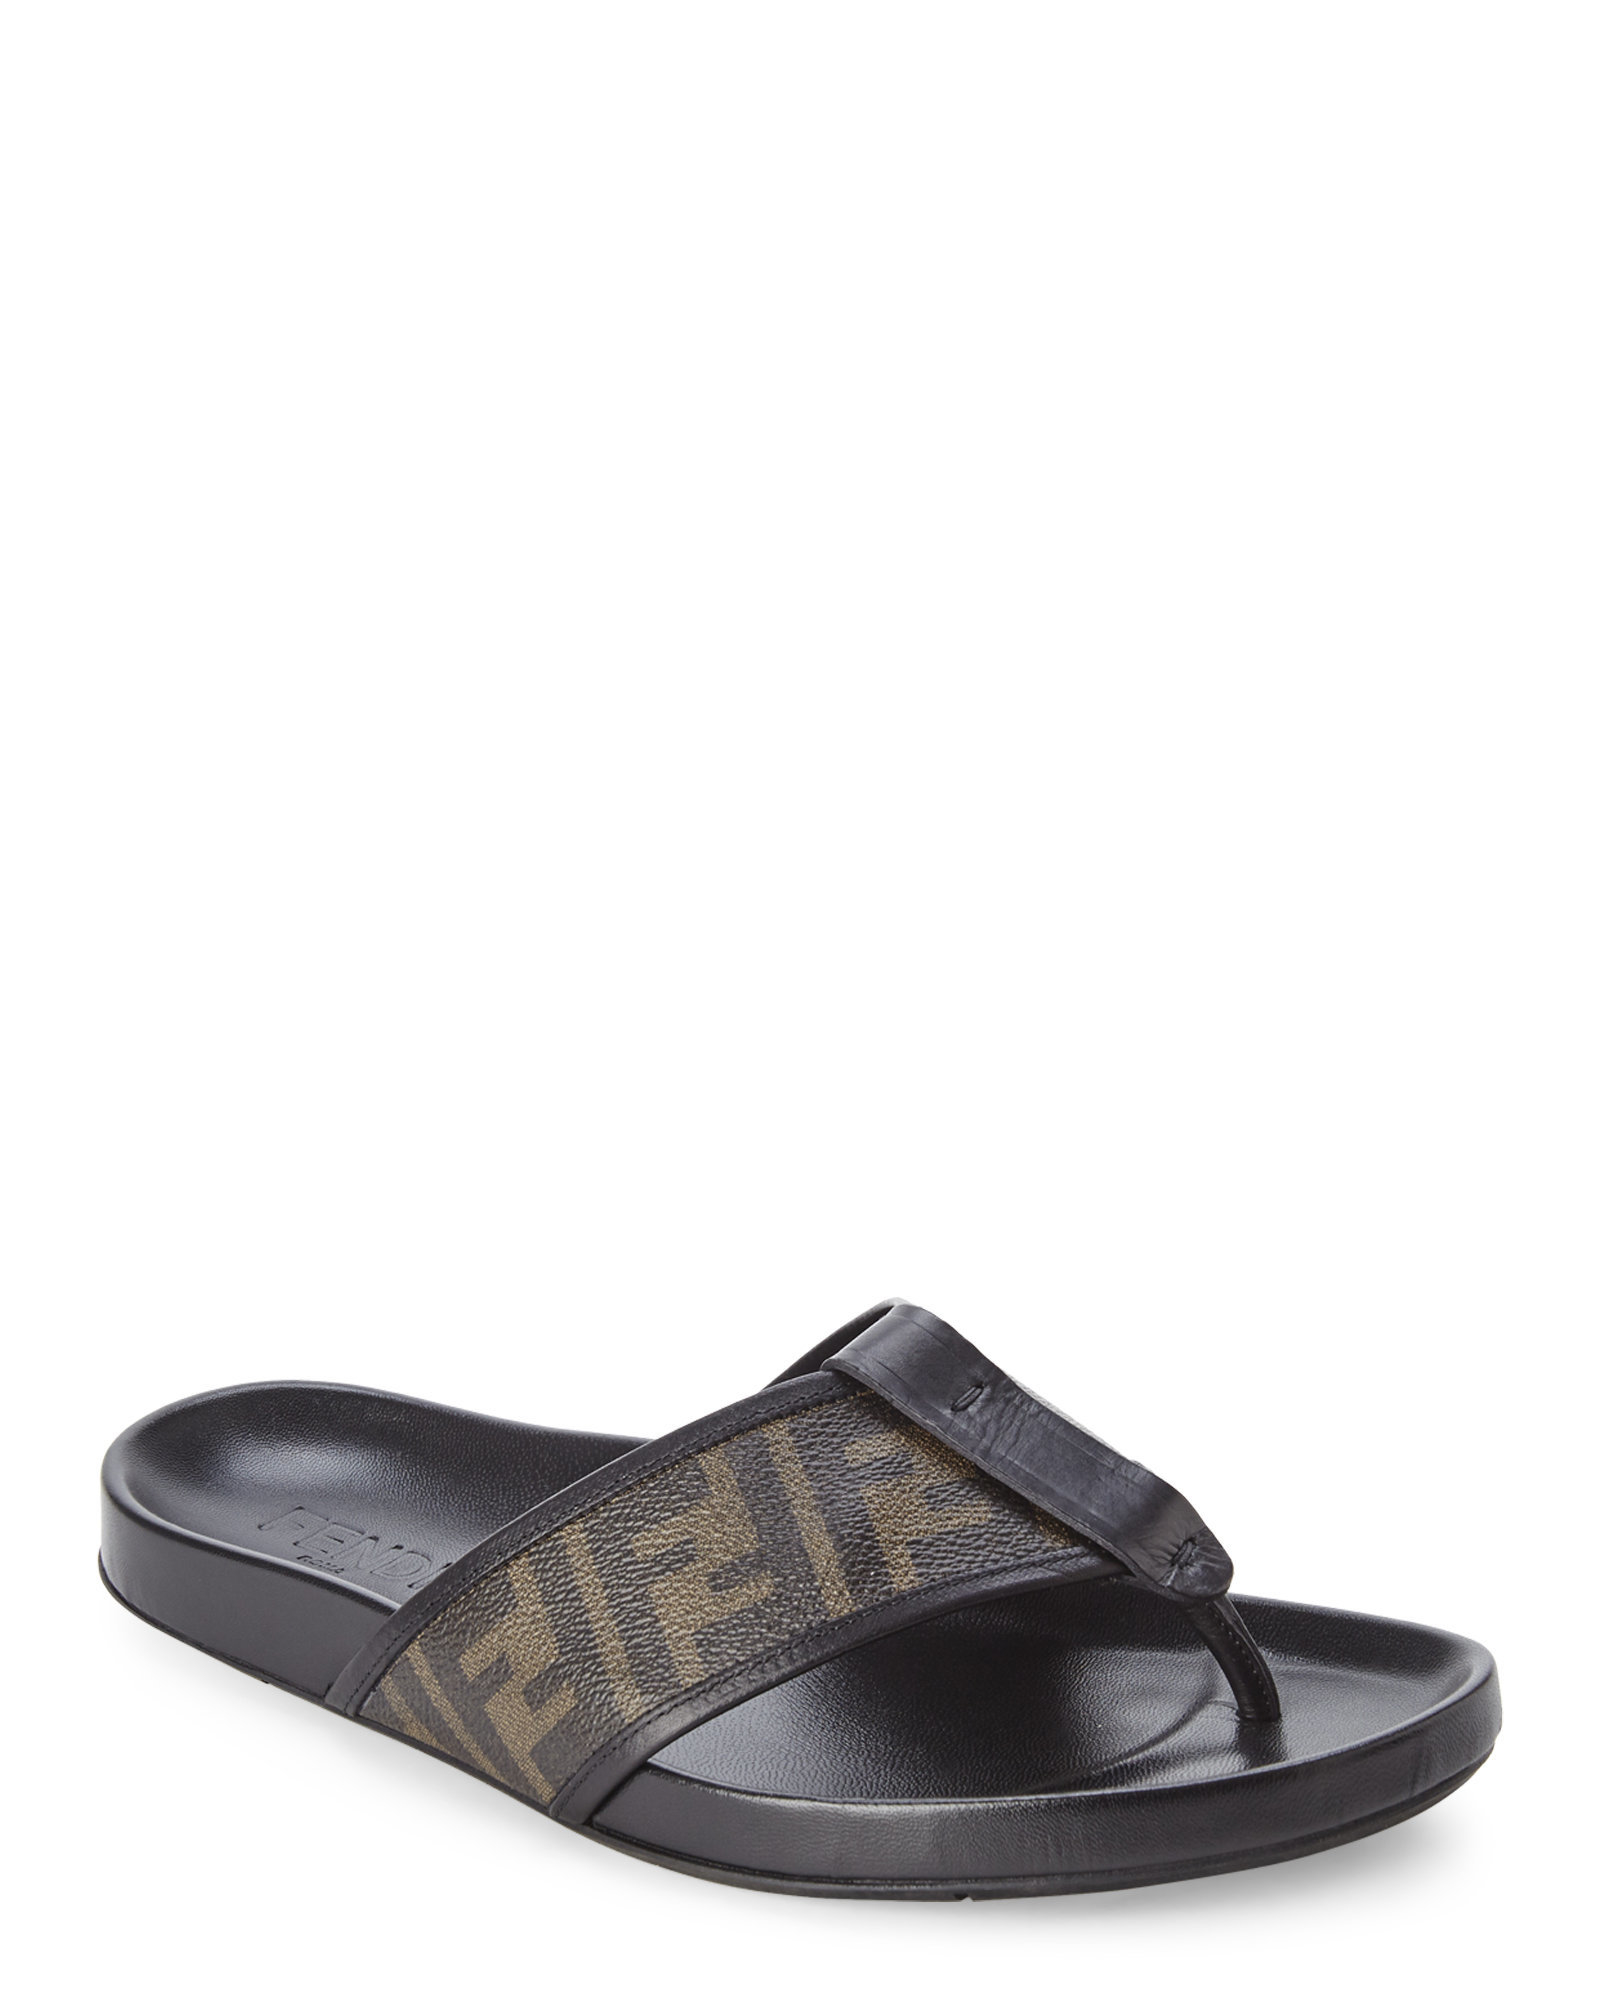 7b75008f3574 Lyst - Fendi Tobacco   Black Zucca Thong Sandals in Black for Men